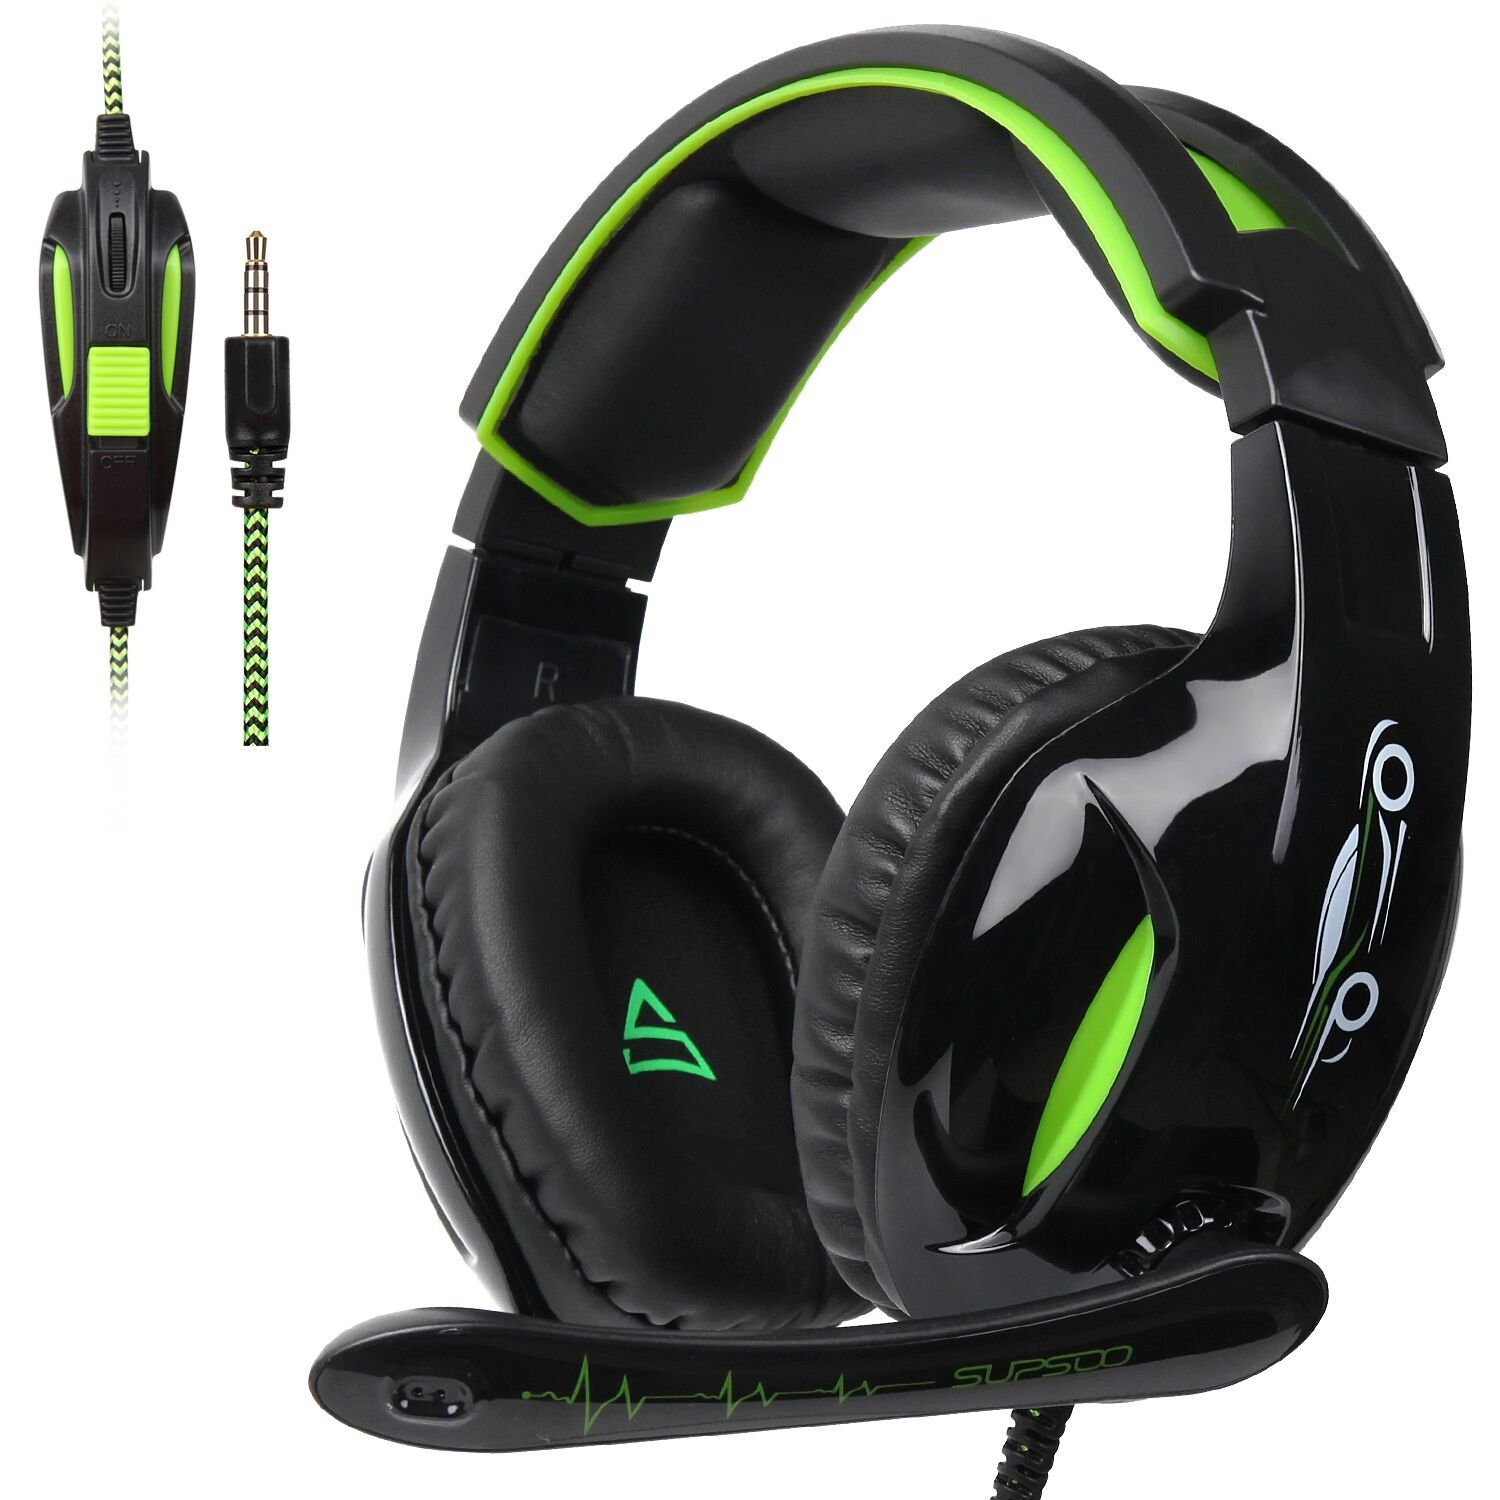 SUPSOO G813 3.5mm Stereo Gaming Headsets Over-Ear Headphones Bass Headsets